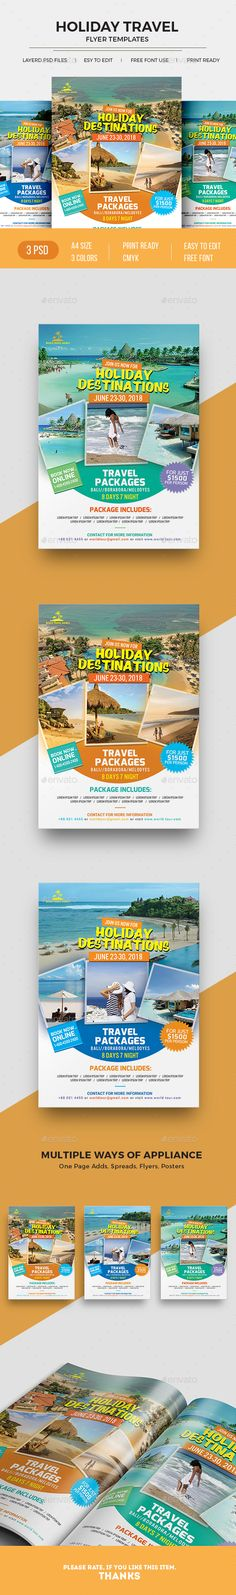 Tourism Events Calendar Flyer Template | Event Calendar, Flyer